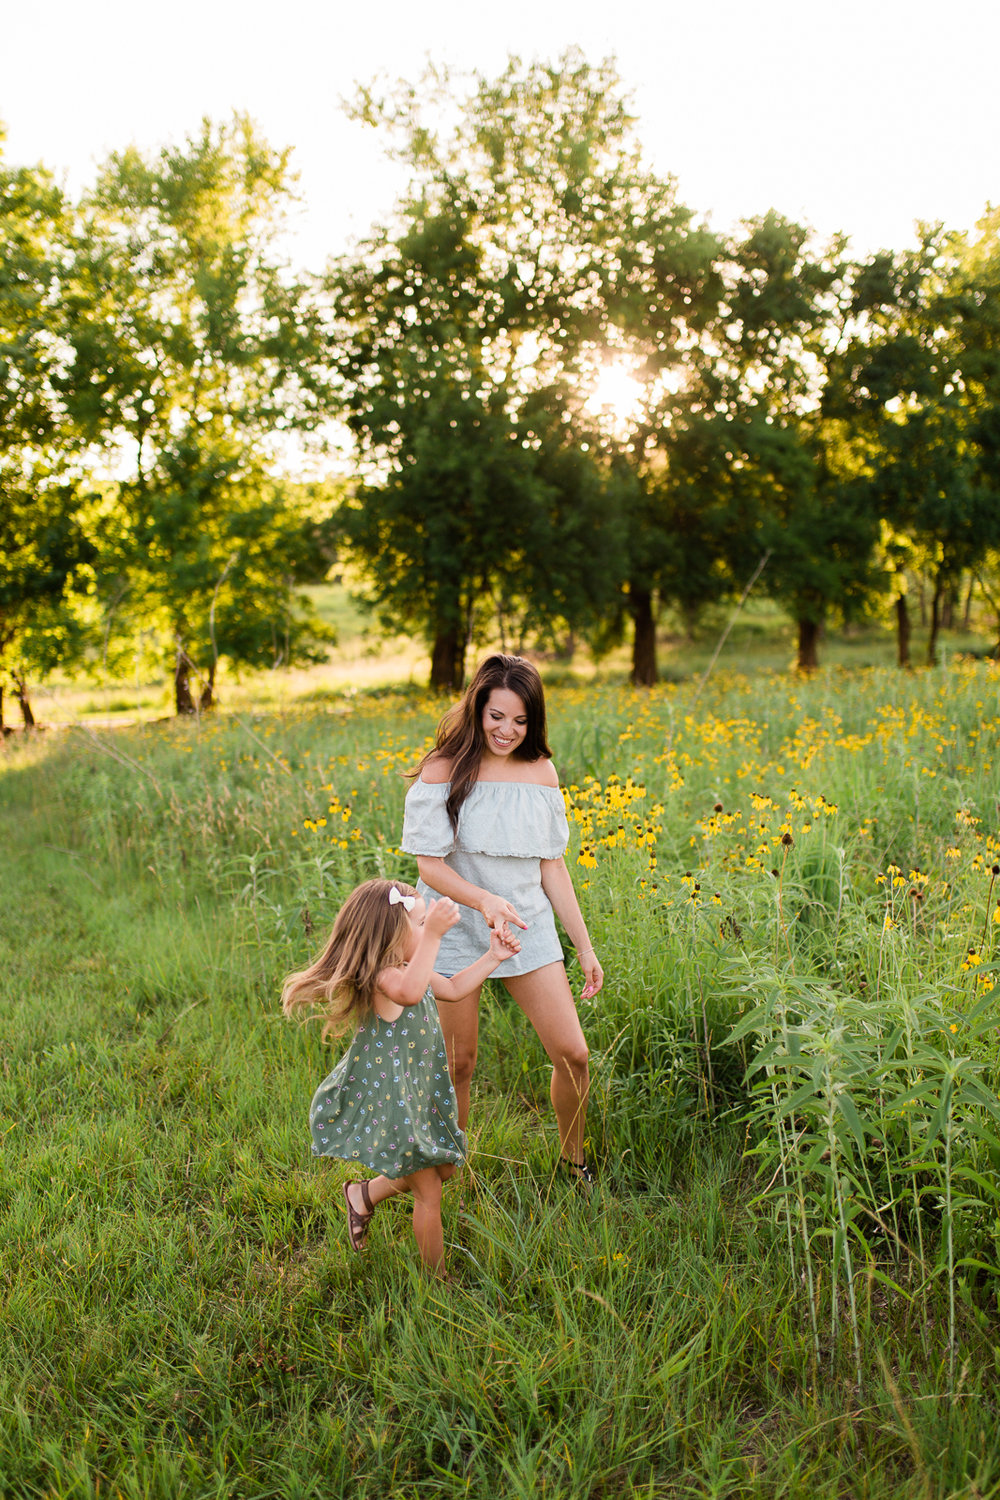 Mother dances with her daughter by a field of flowers, mommy and me session at Shawnee Mission Park, Kansas City family photographer